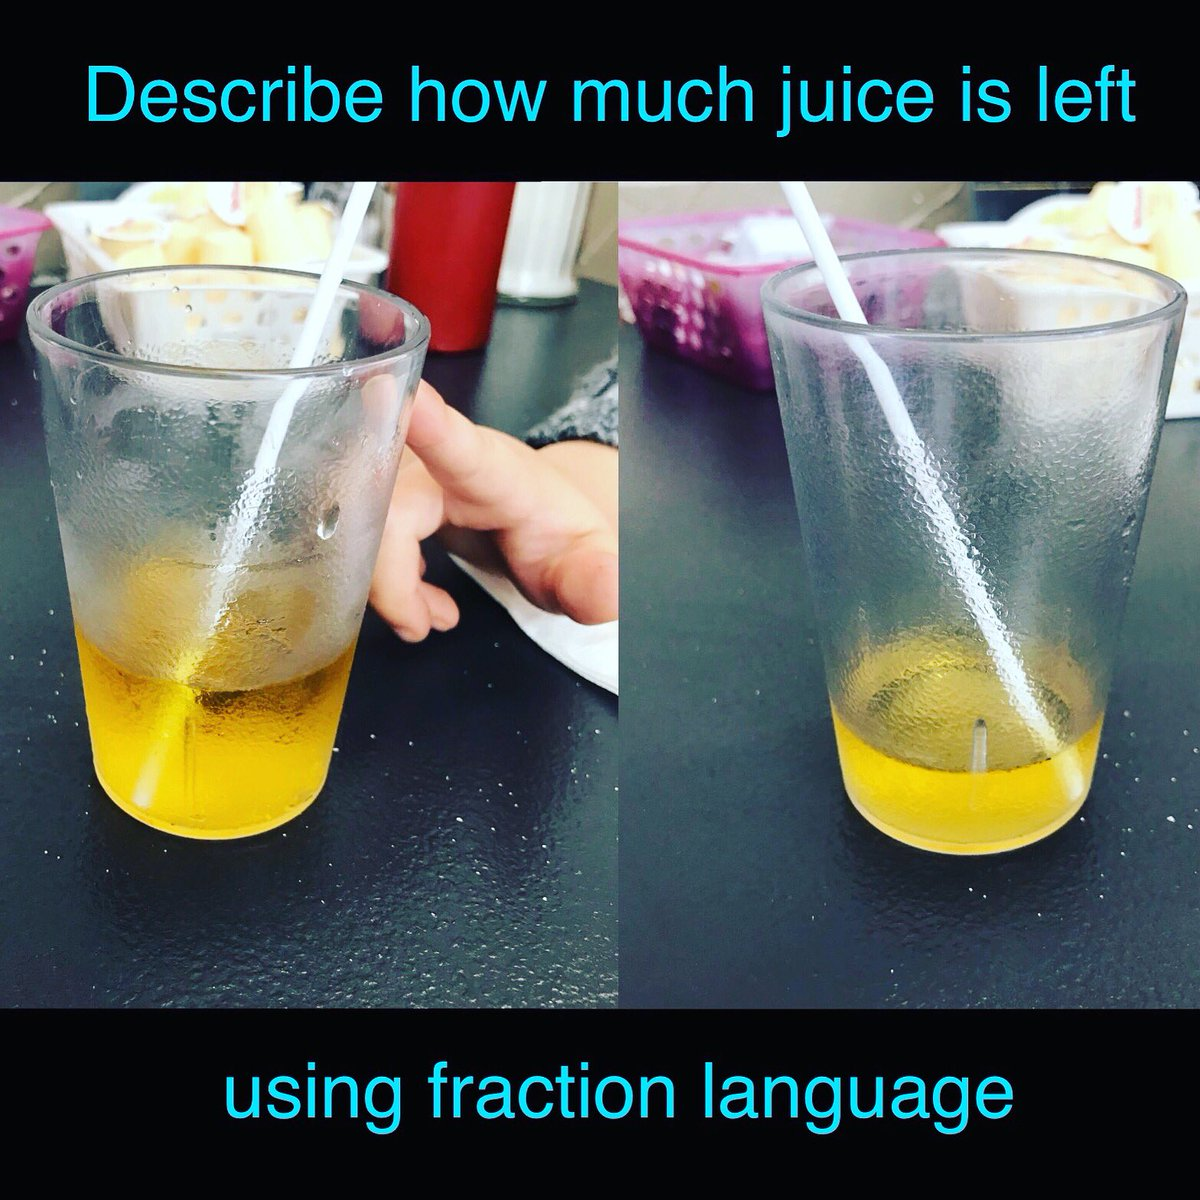 """test Twitter Media - Math at Brunch Out for brunch: table conversation centred around describing how much juice we had left & how much we had already drank using fractions.  When the 4yo was all done his juice, he exclaimed, """"I drank four fourths!"""" 😃 #everyonecanlearnmath #tmwyk https://t.co/sSaQ1JSSrP"""